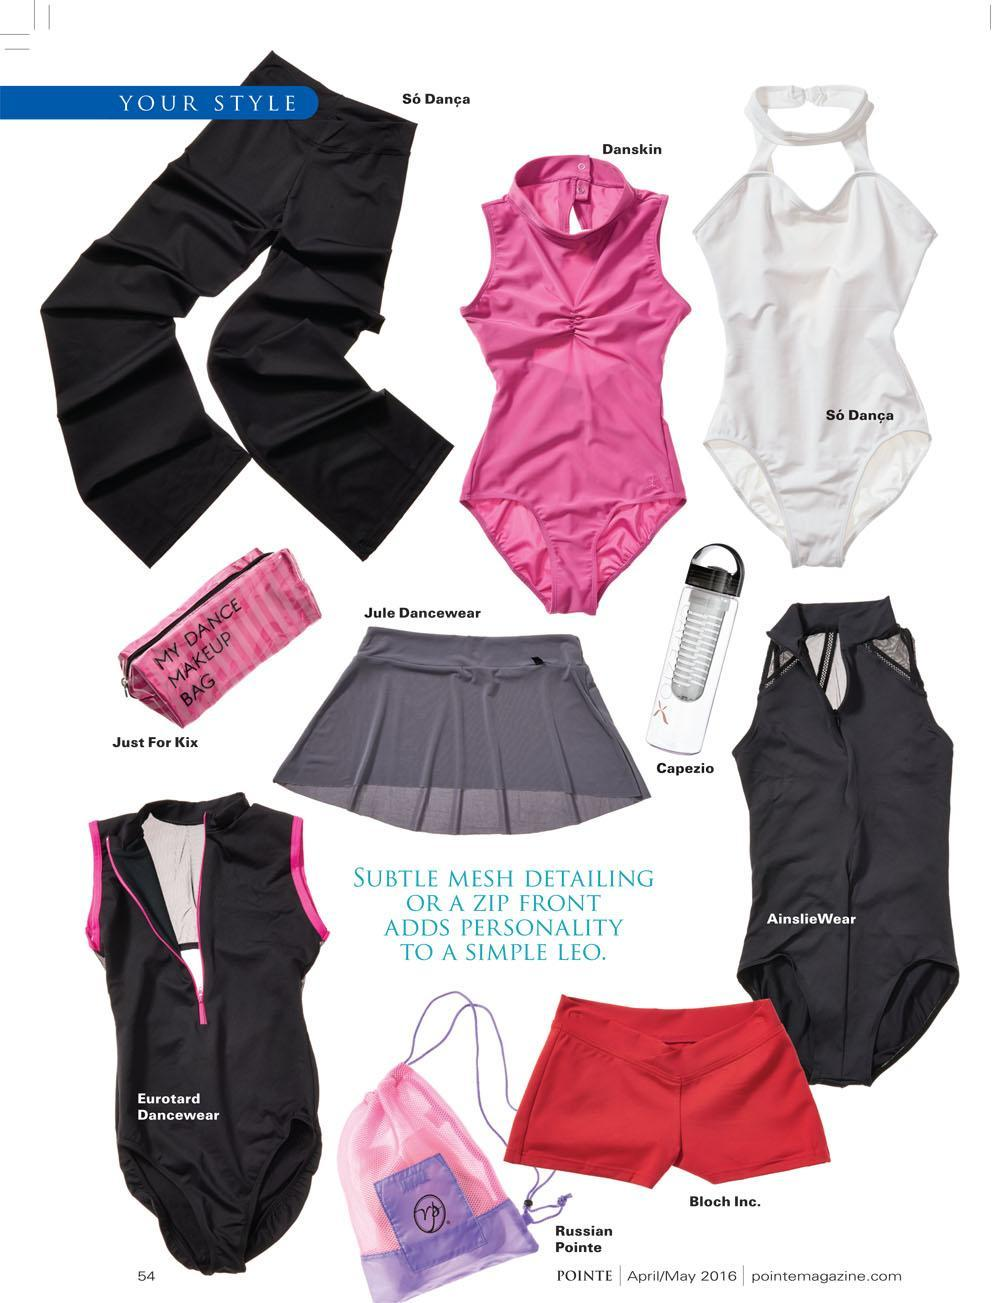 b997bac622b5 Shopping for your summer intensive shouldn t feel like a chore. We ve  gathered dance bag essentials